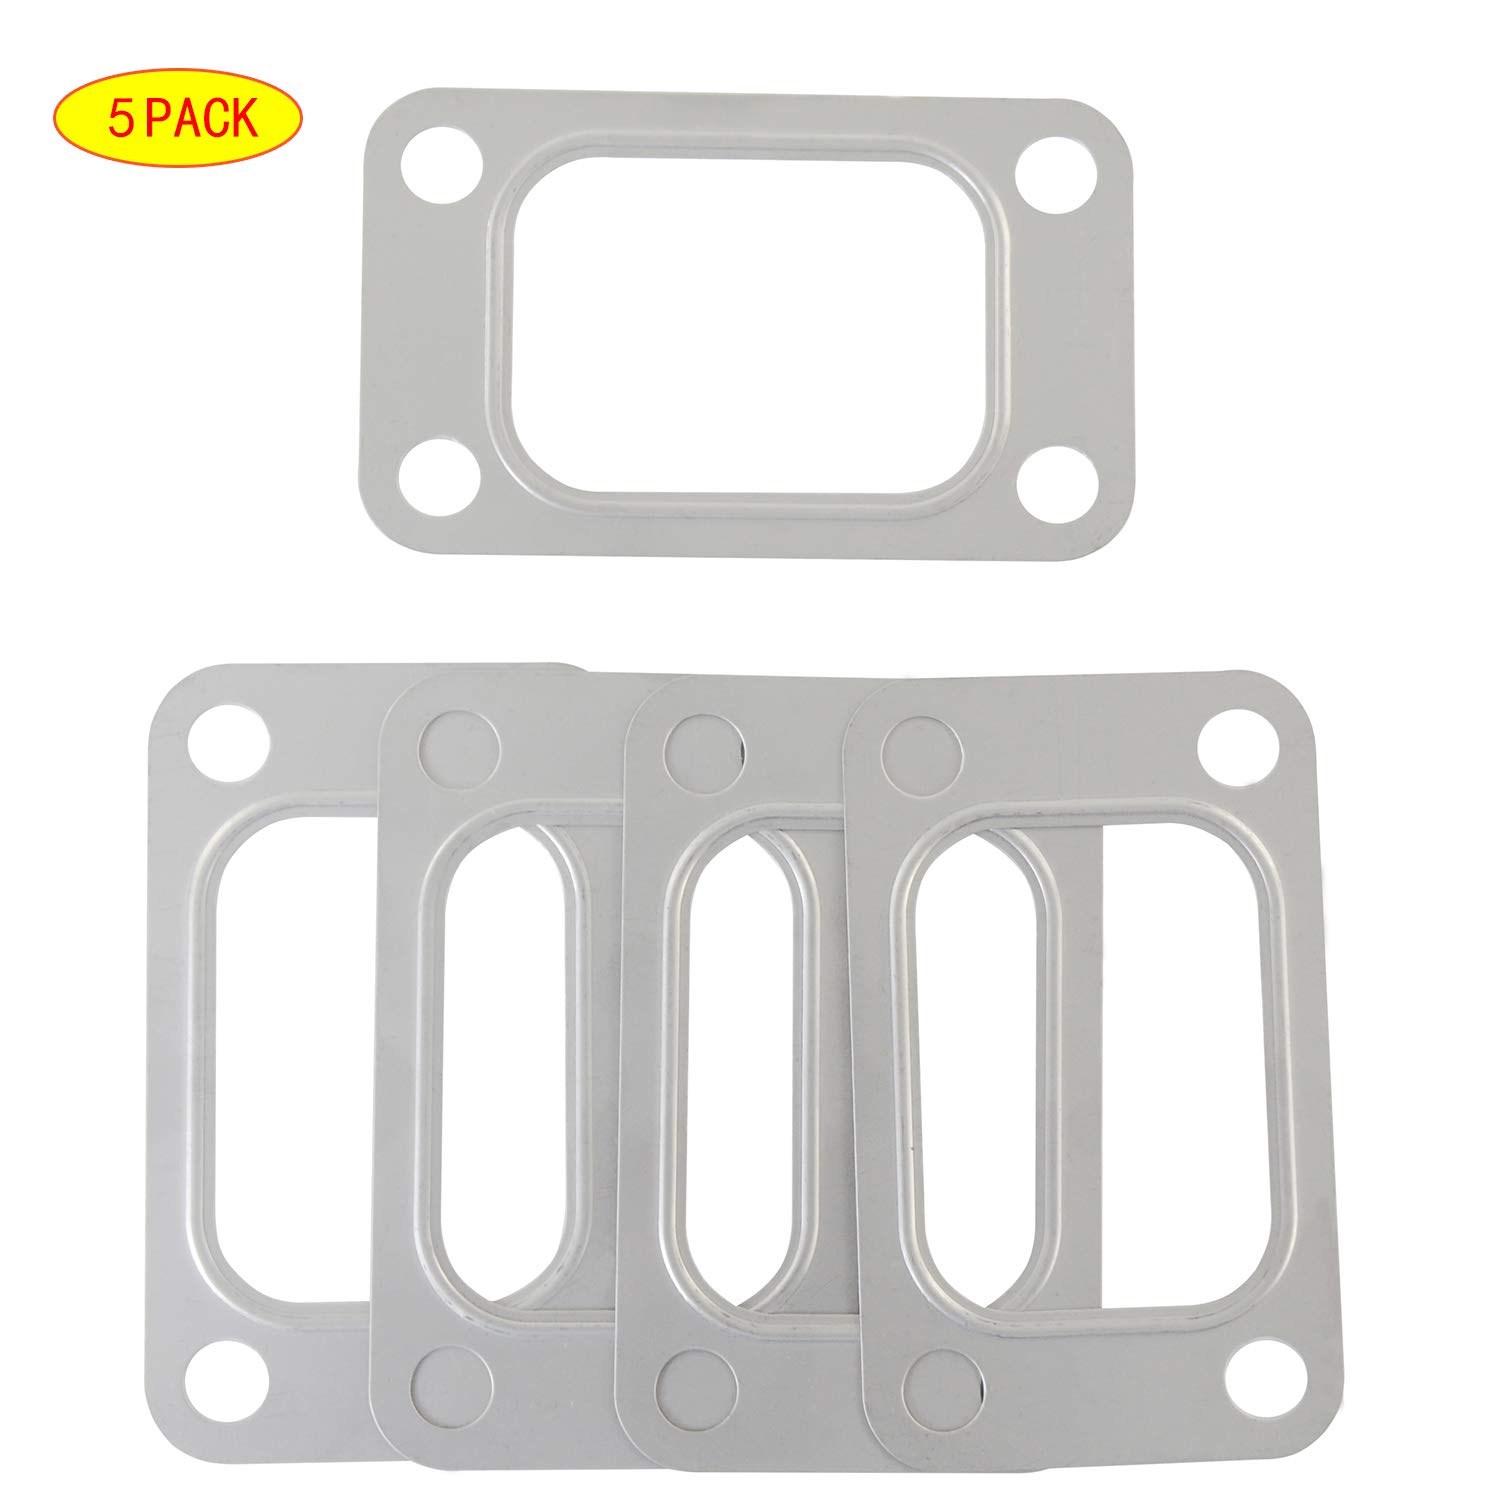 PTNHZ 5 Pcs Stainless Steel Turbo Turbine Inlet Manifold Gasket for T25 T28 HQ